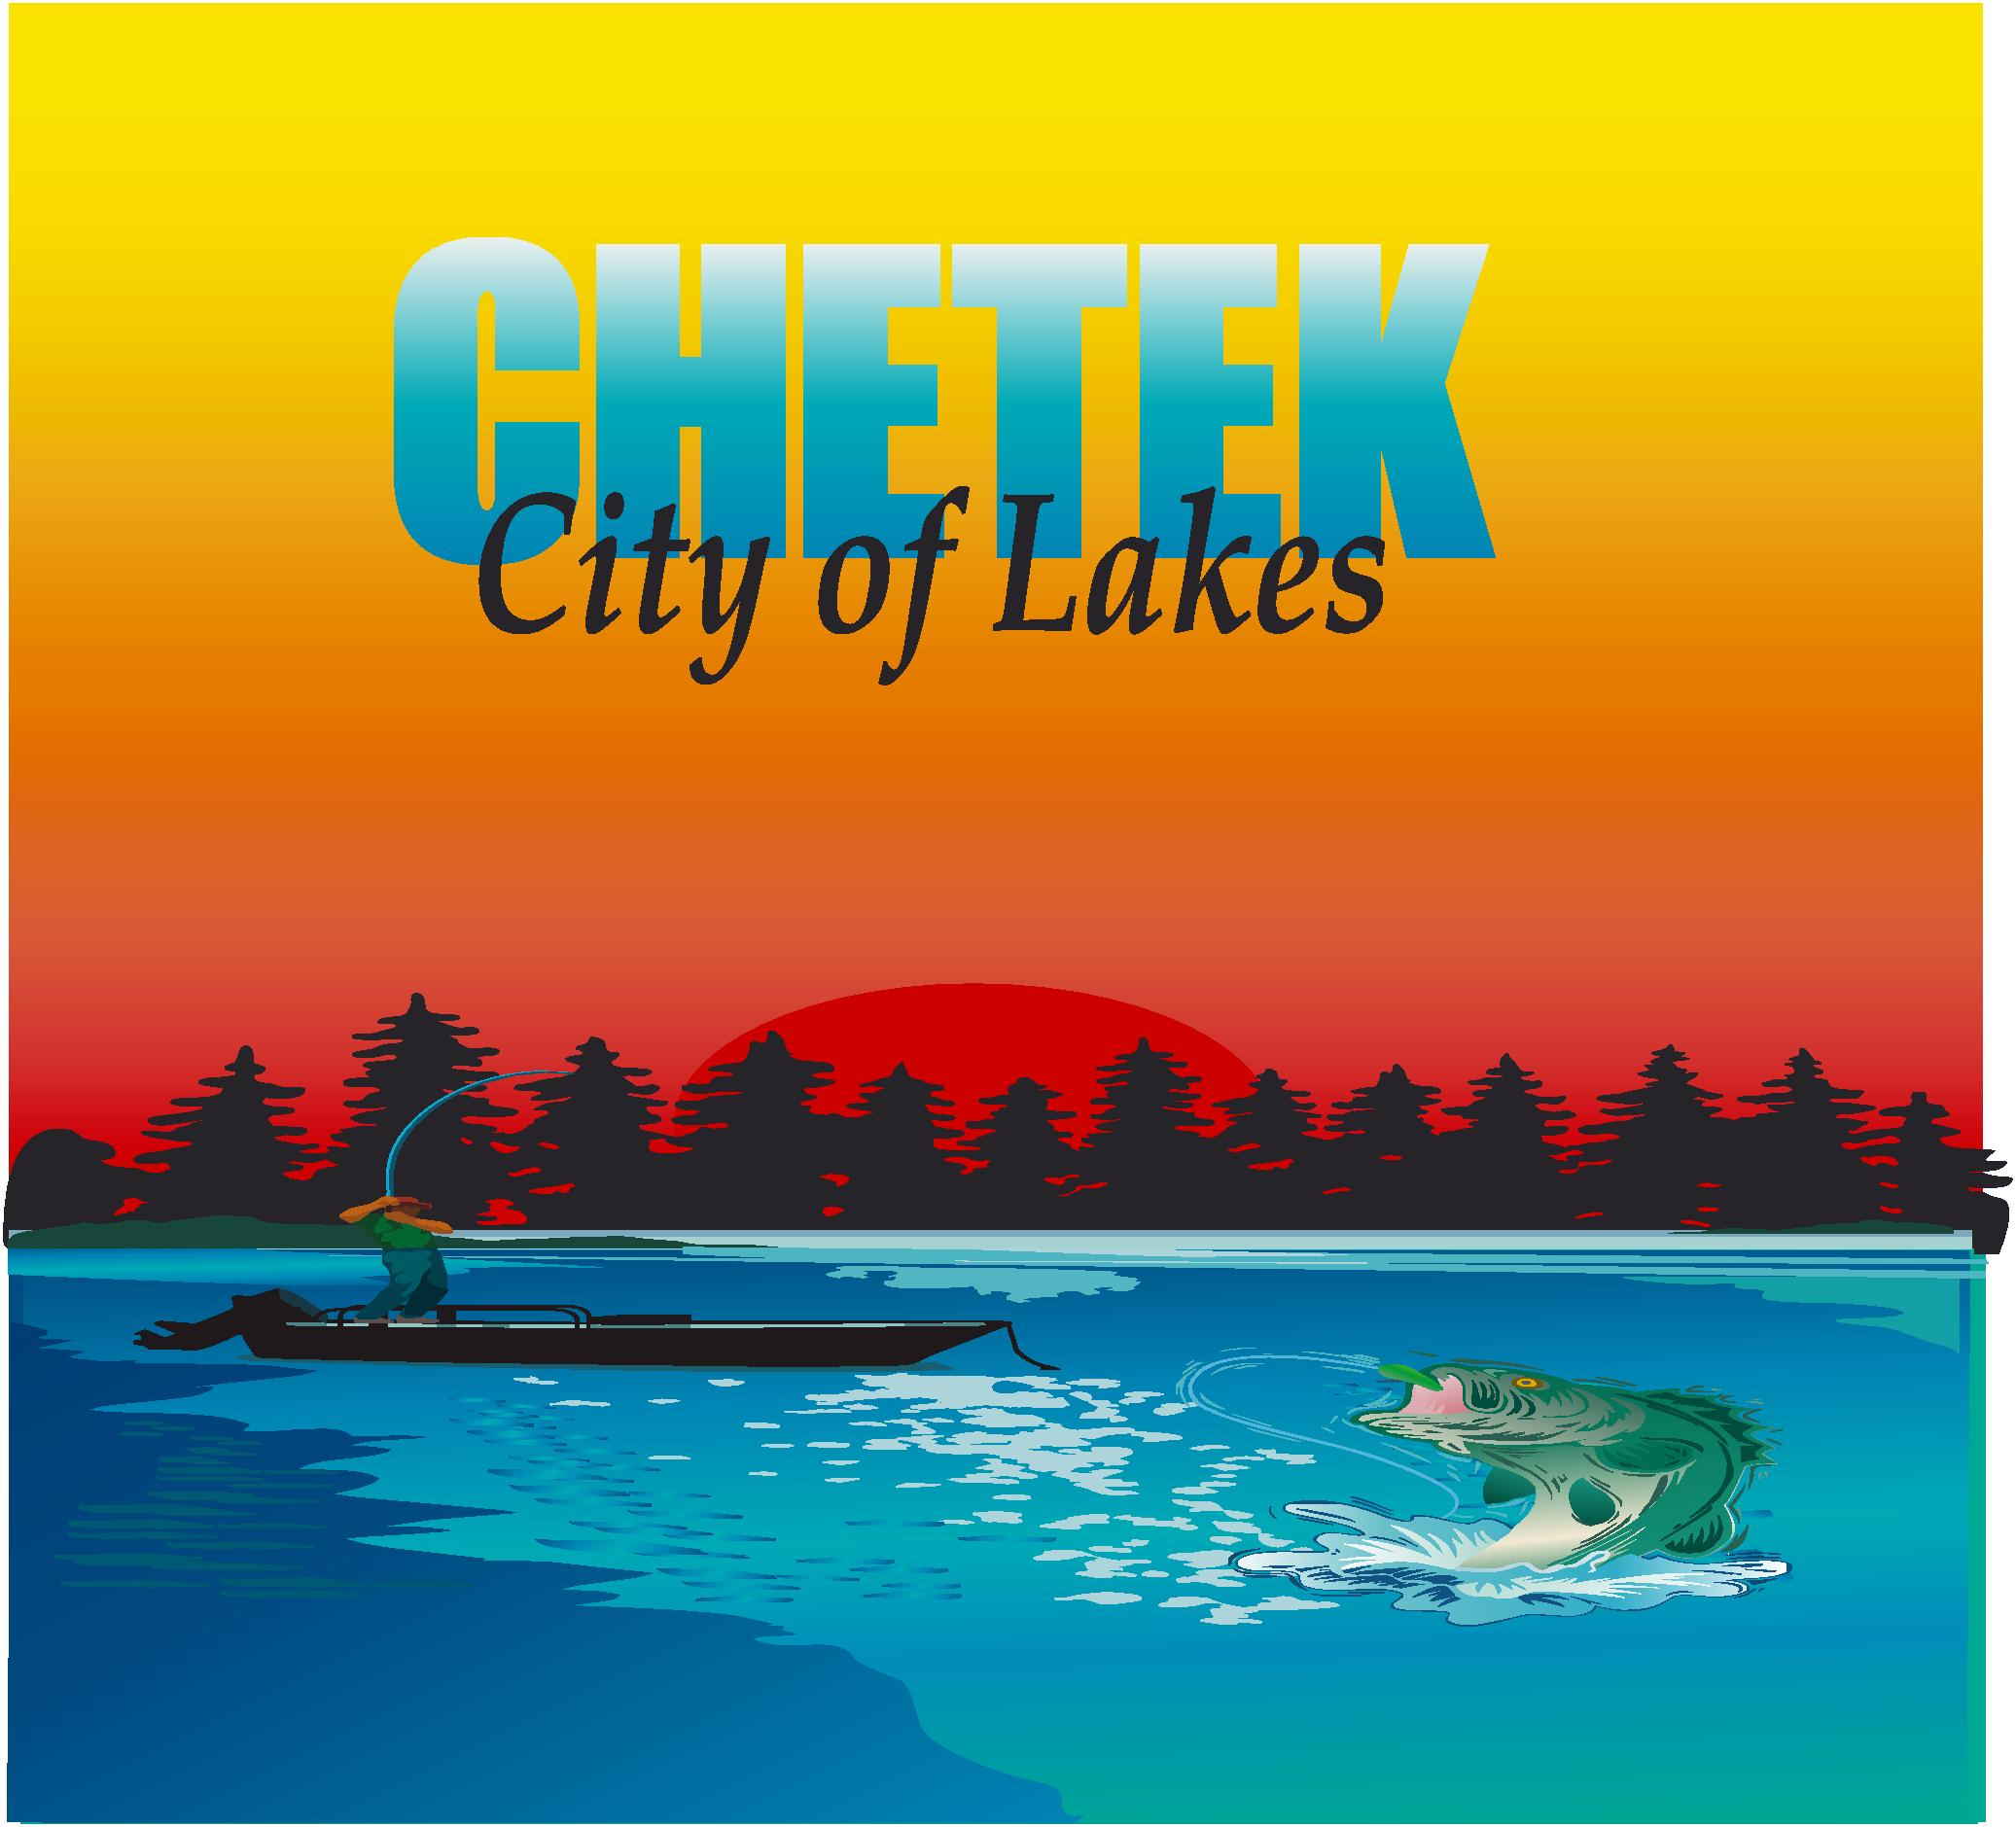 City of Lakes